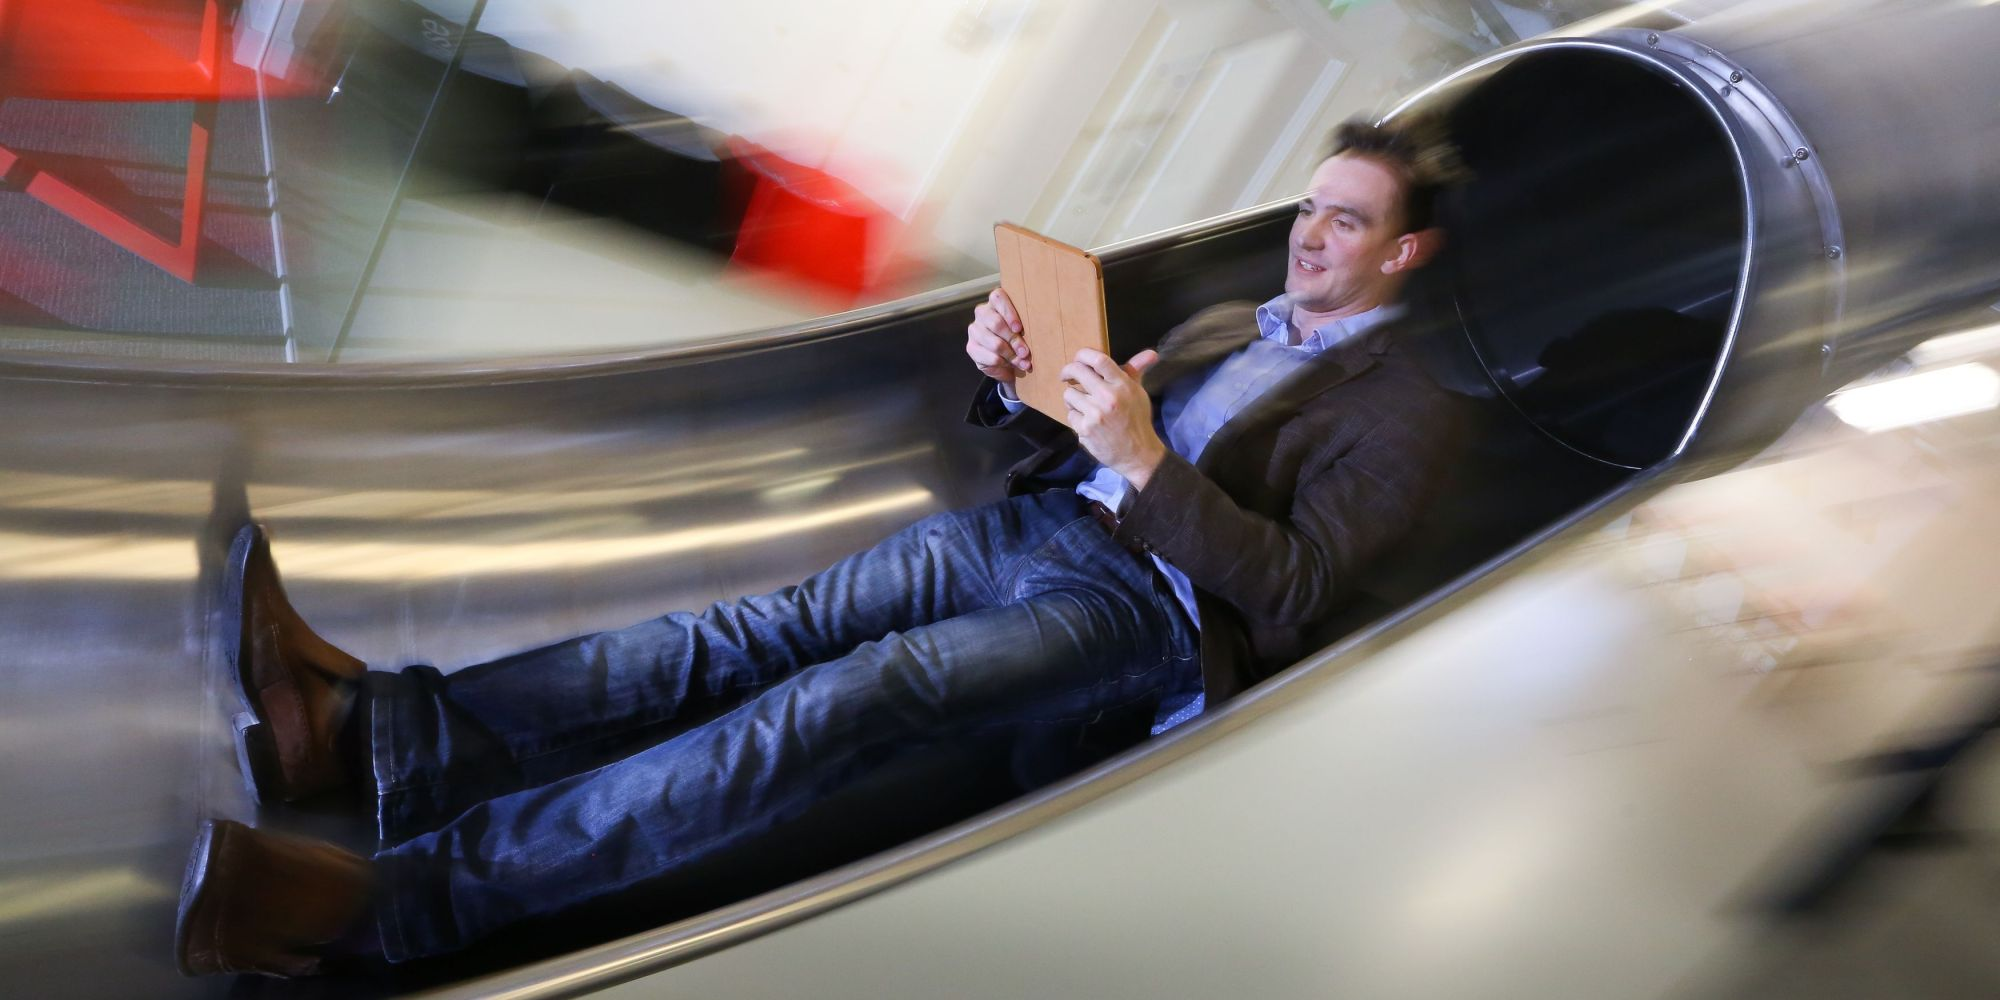 Tech Office In Folkstone Builds Slide For Googleesque Staff